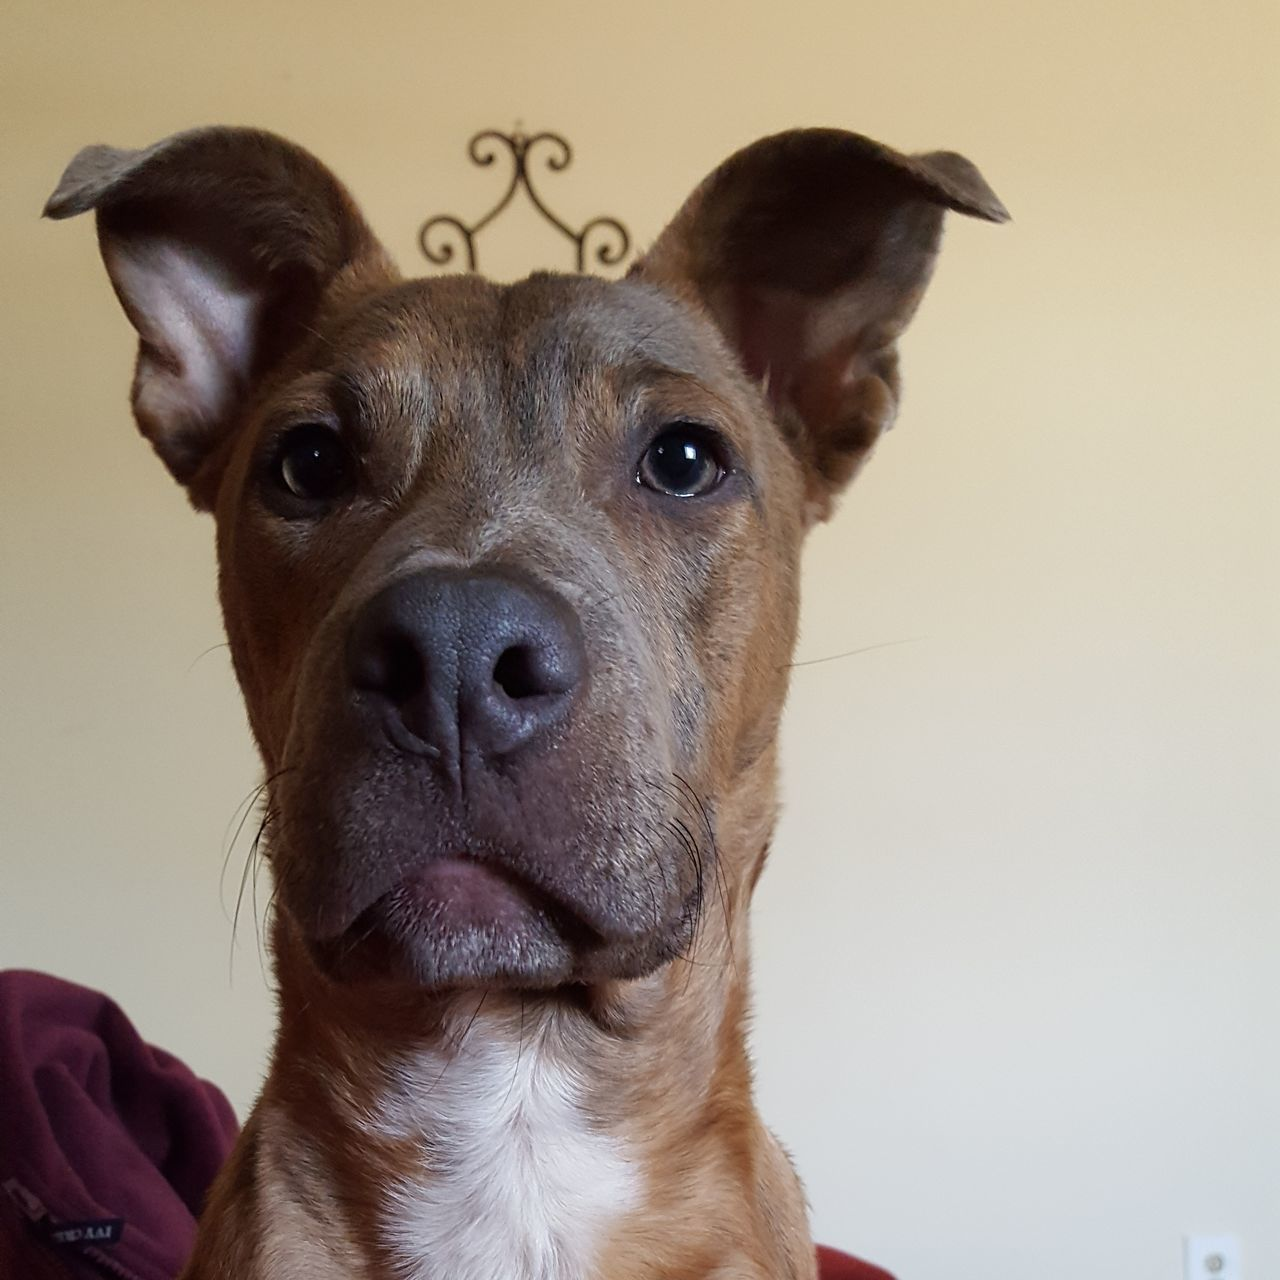 Prince Charming One Animal Looking At Camera Dog Portrait Pets Studio Shot Animal Animal Themes Animal Body Part Close-up No People Domestic Animals Mammal Day Prince Charming Castiel Handsome Boy Pitbull Lovernotafighter My Furbaby Rescue Dog Adopt Dont Shop Love My Life